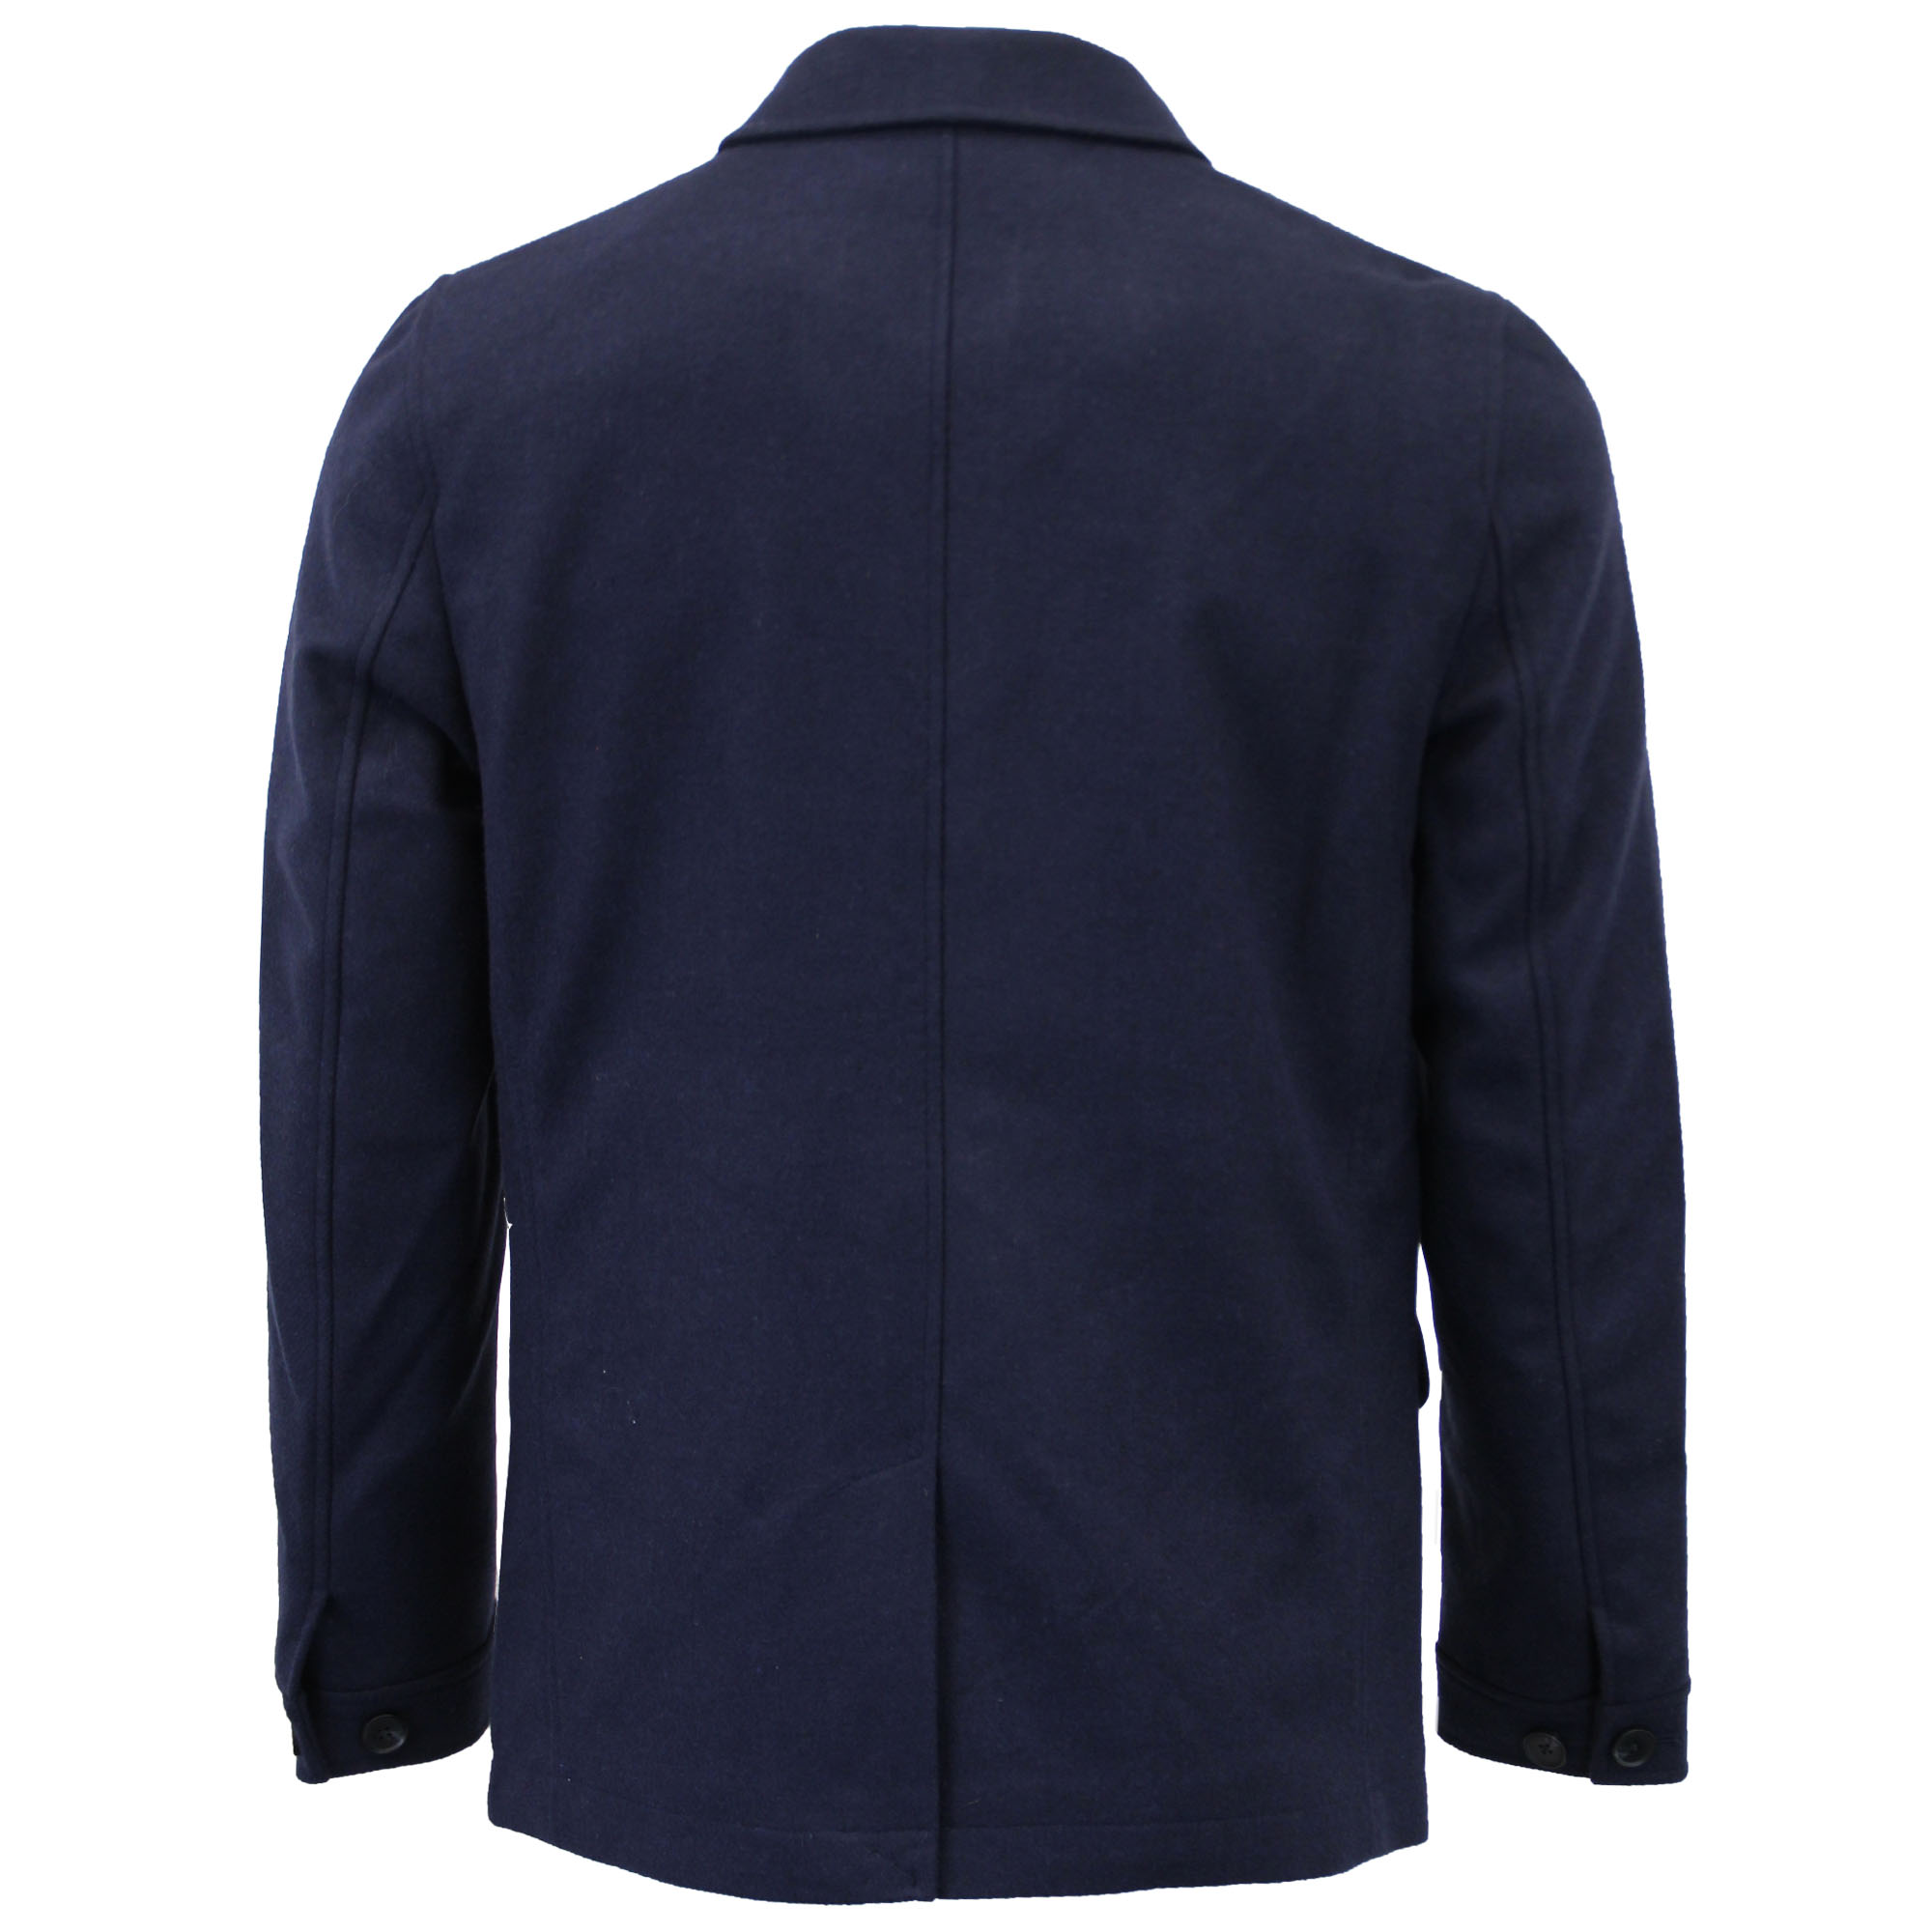 Mens Wool Mix Jacket Threadbare Coat Double Breasted Duffle Lined Winter New